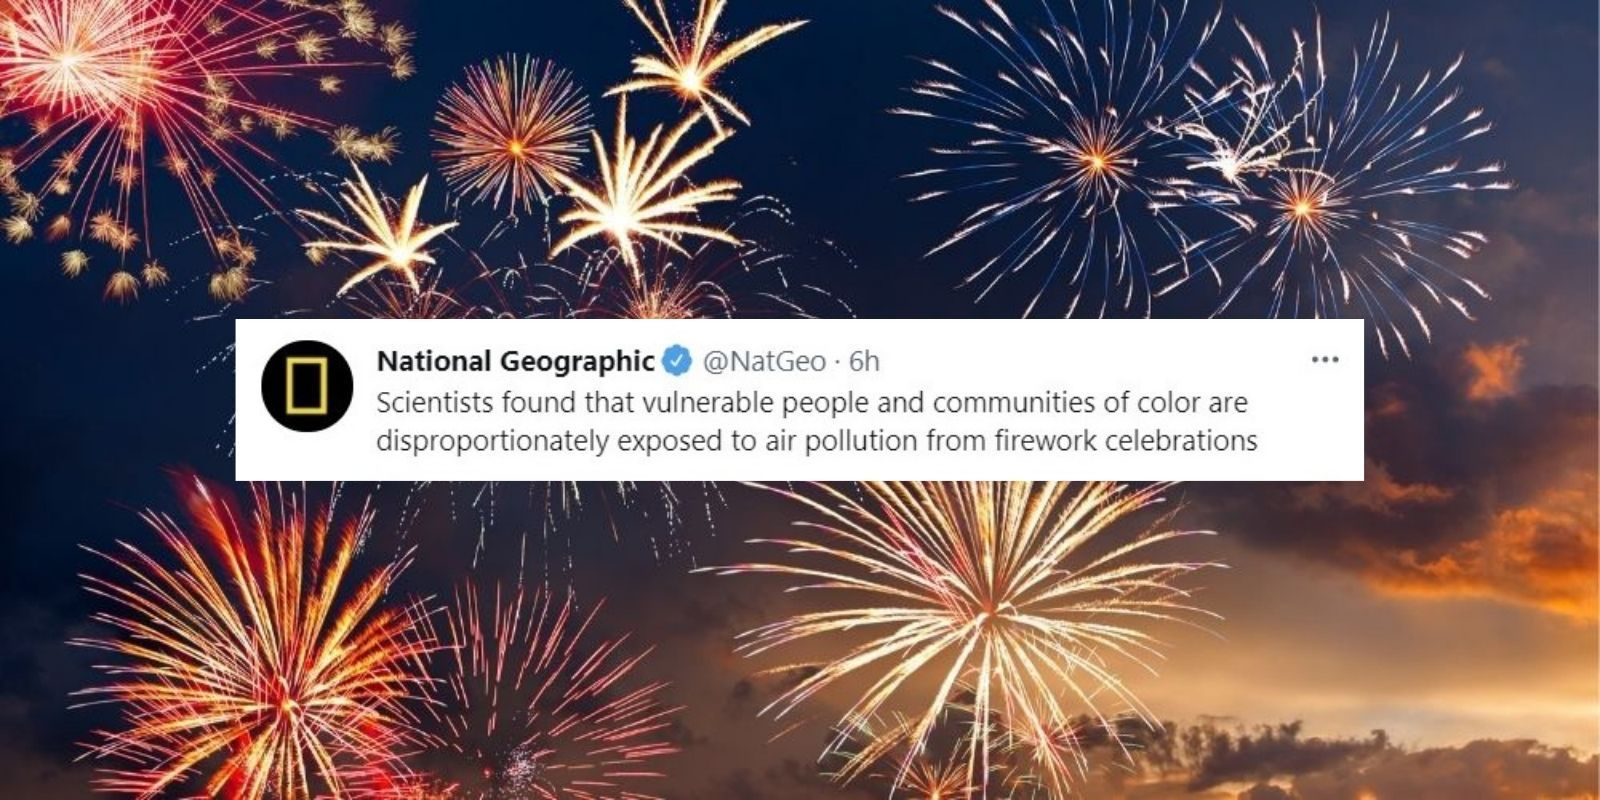 National Geographic claims Fourth of July fireworks are racist, smoke targets communities of color